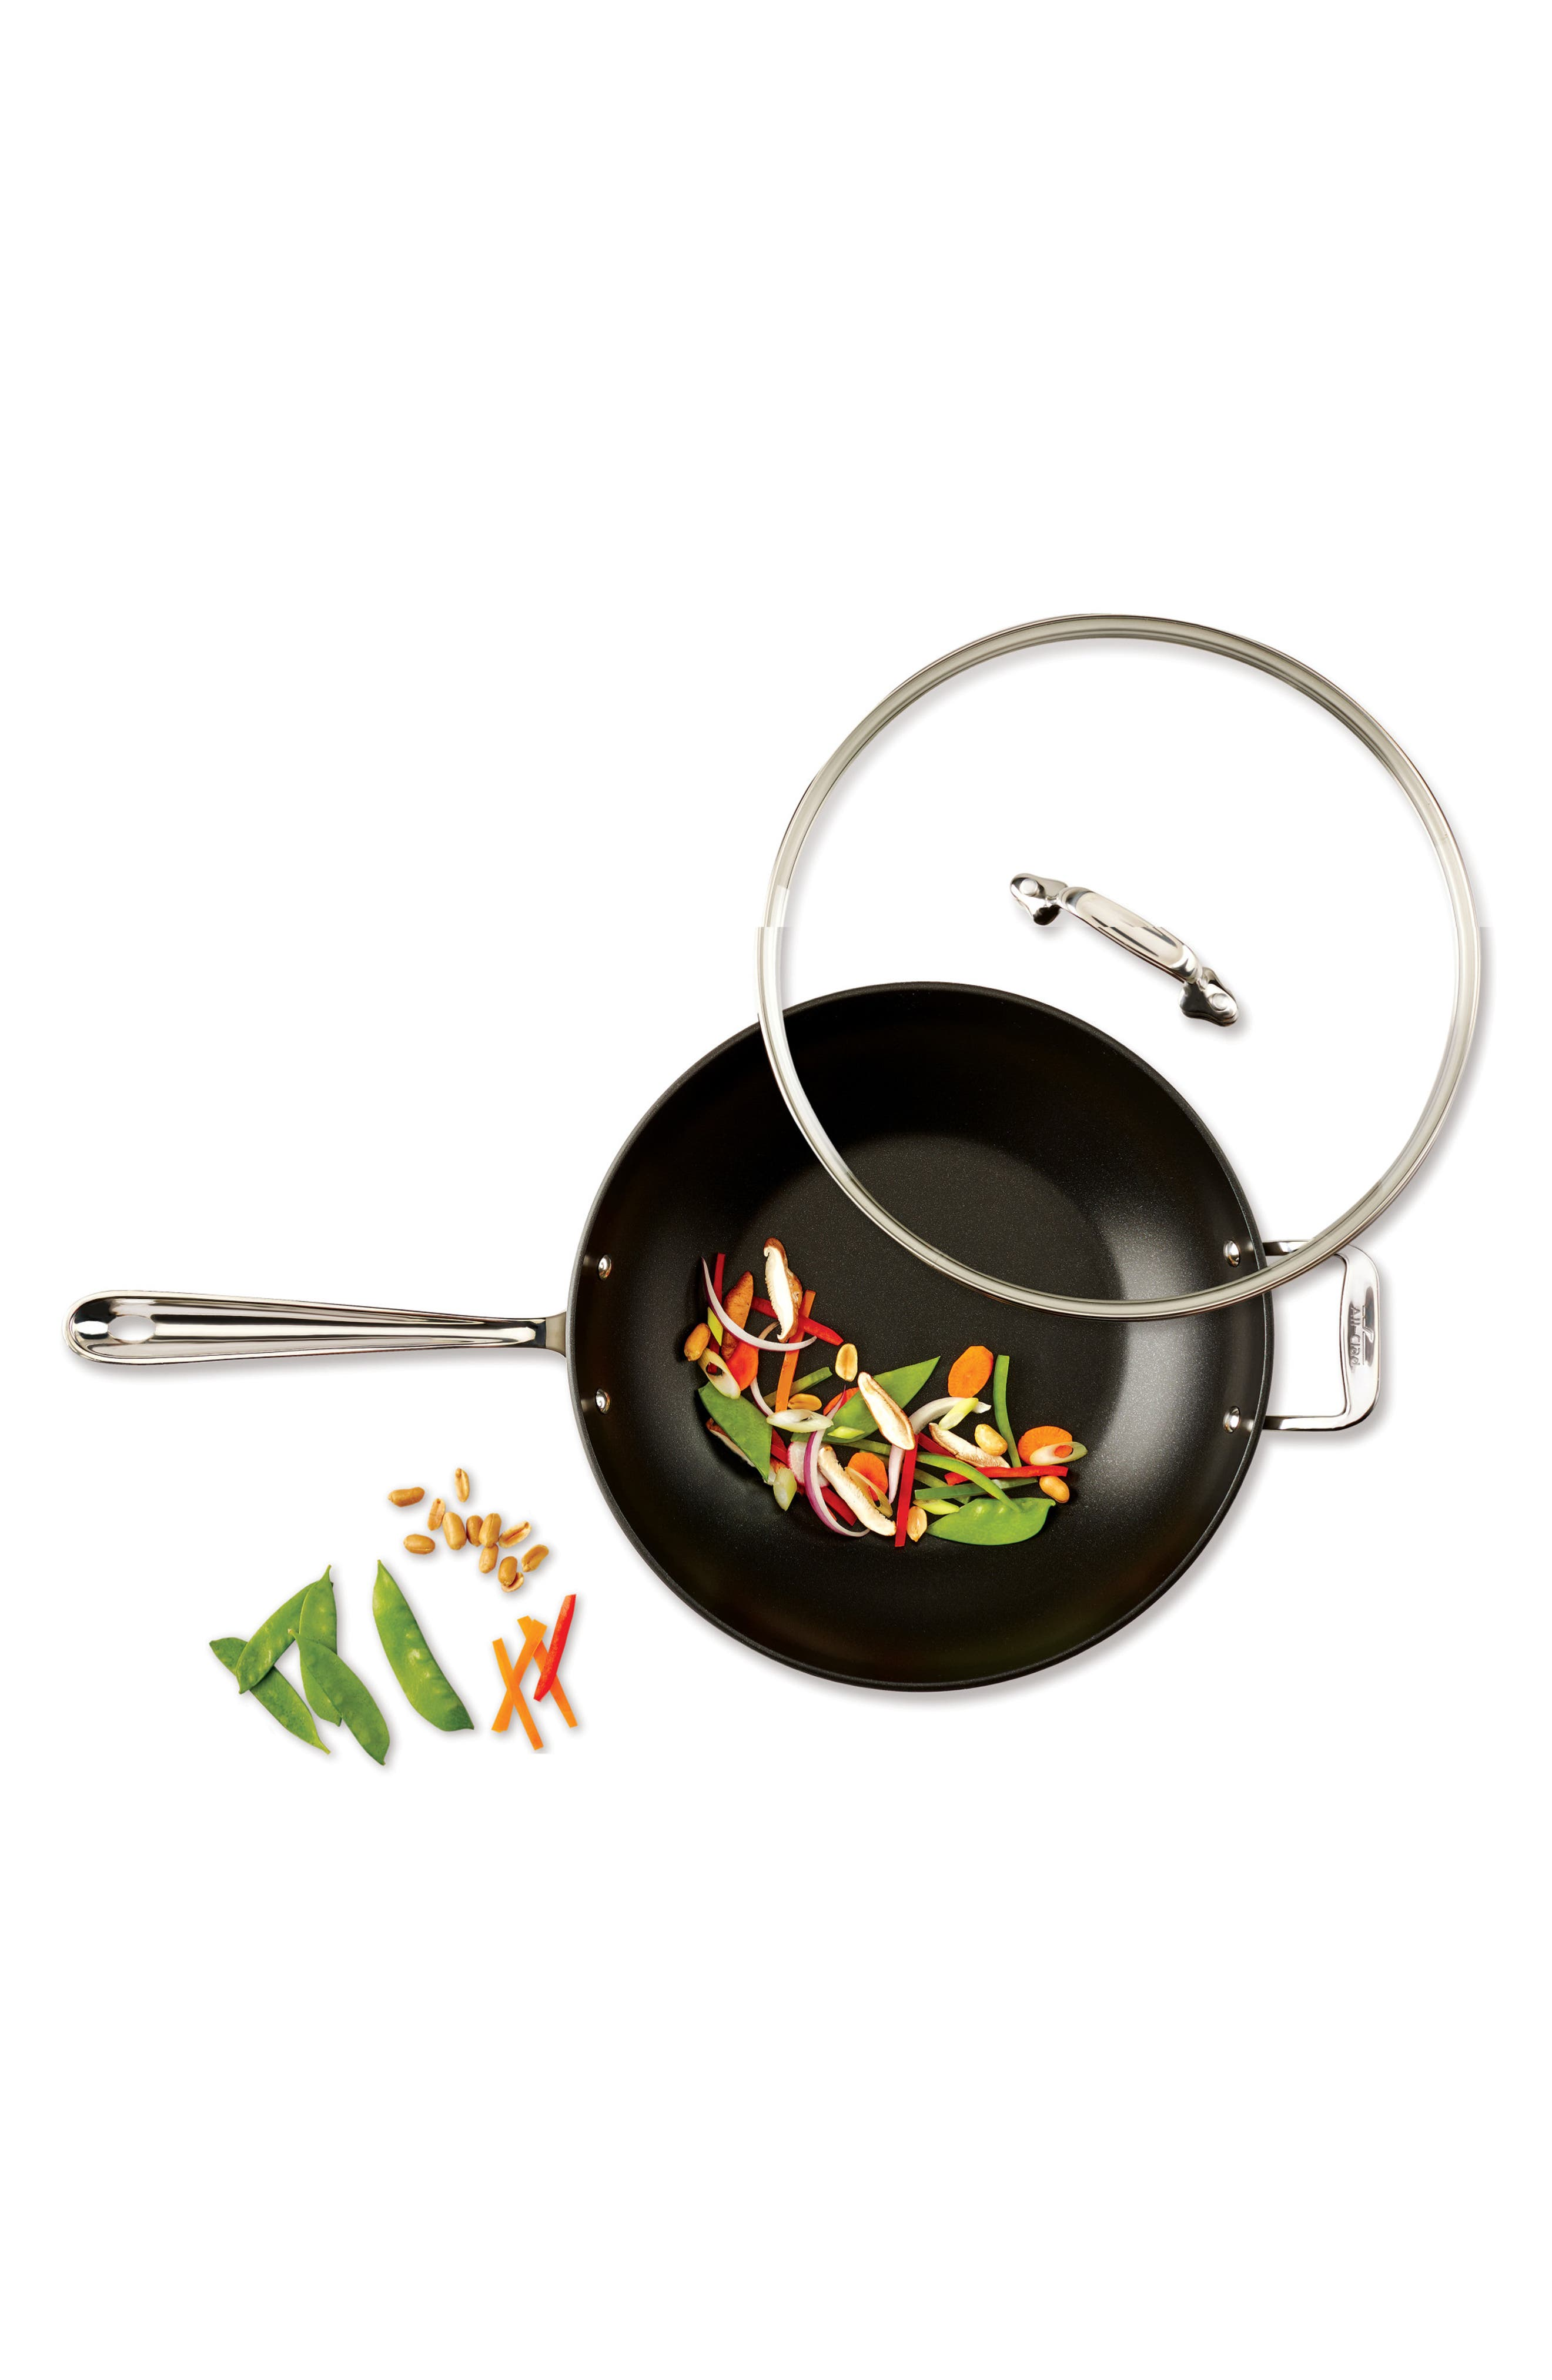 ALL-CLAD,                             12-Inch Hard Anodized Aluminum Nonstick Chef's Pan,                             Alternate thumbnail 3, color,                             BLACK